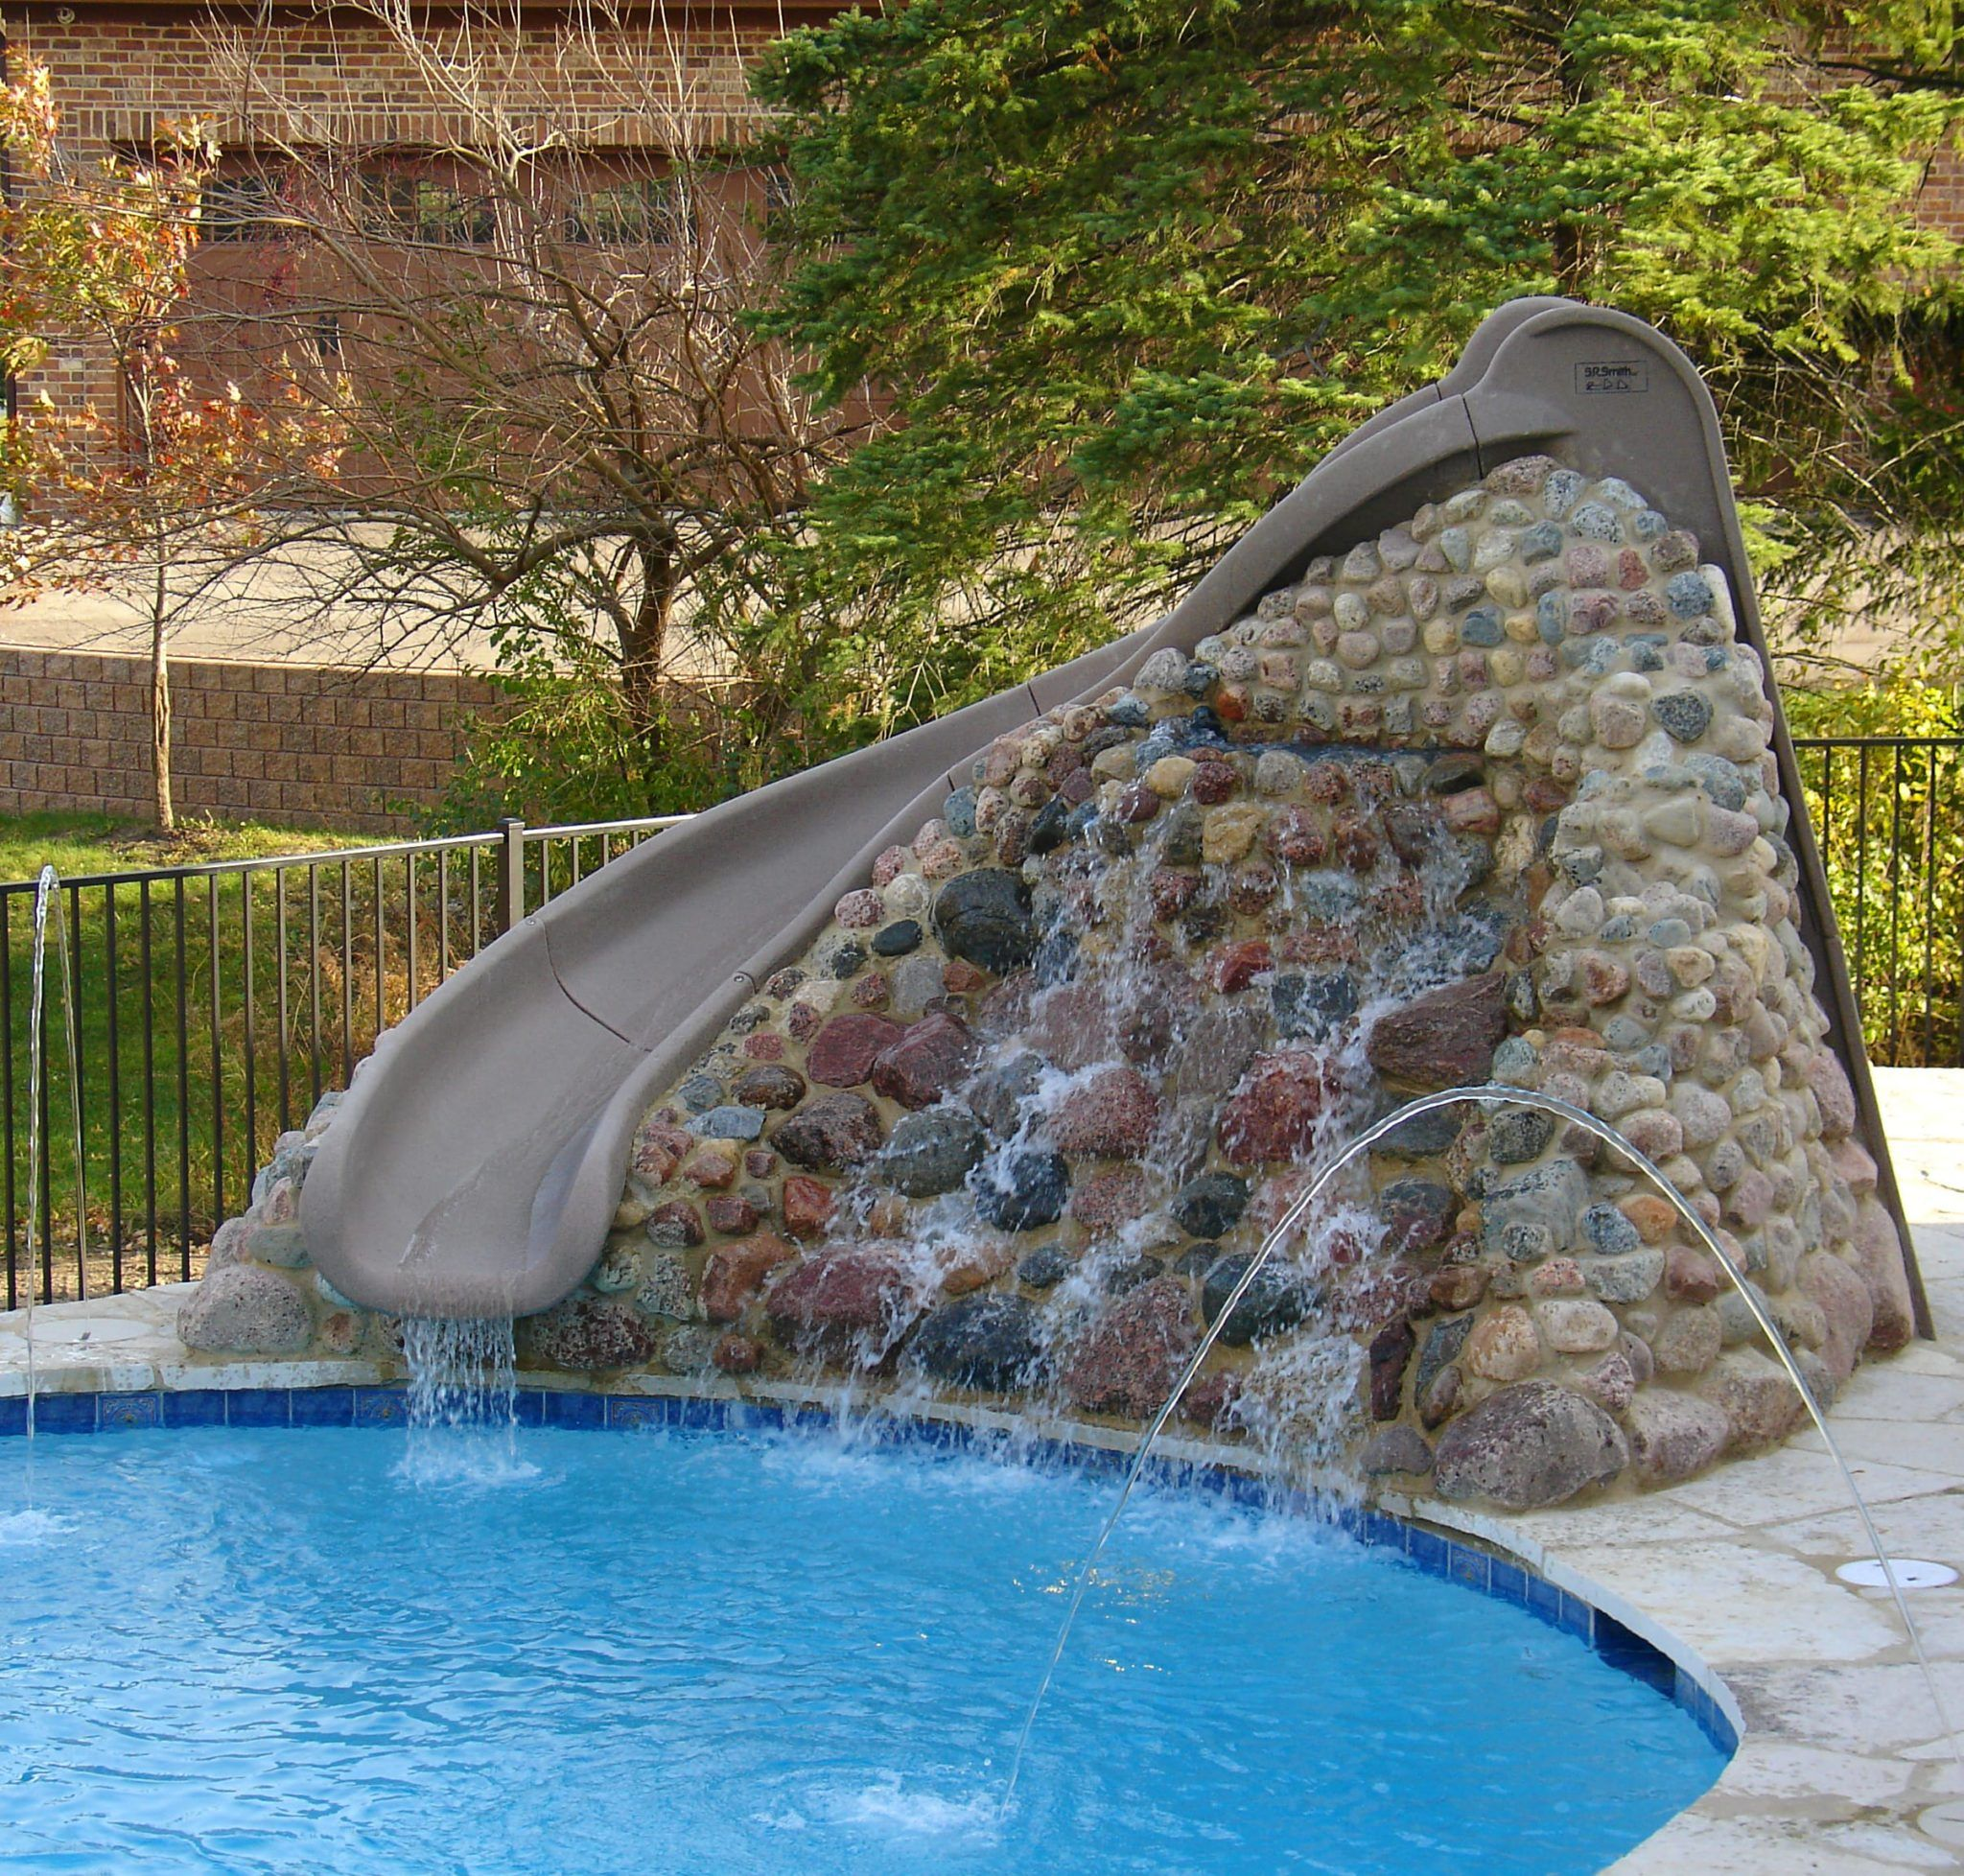 Image Result For Pool Slide Small Rock Hill To Top Swimming Pool